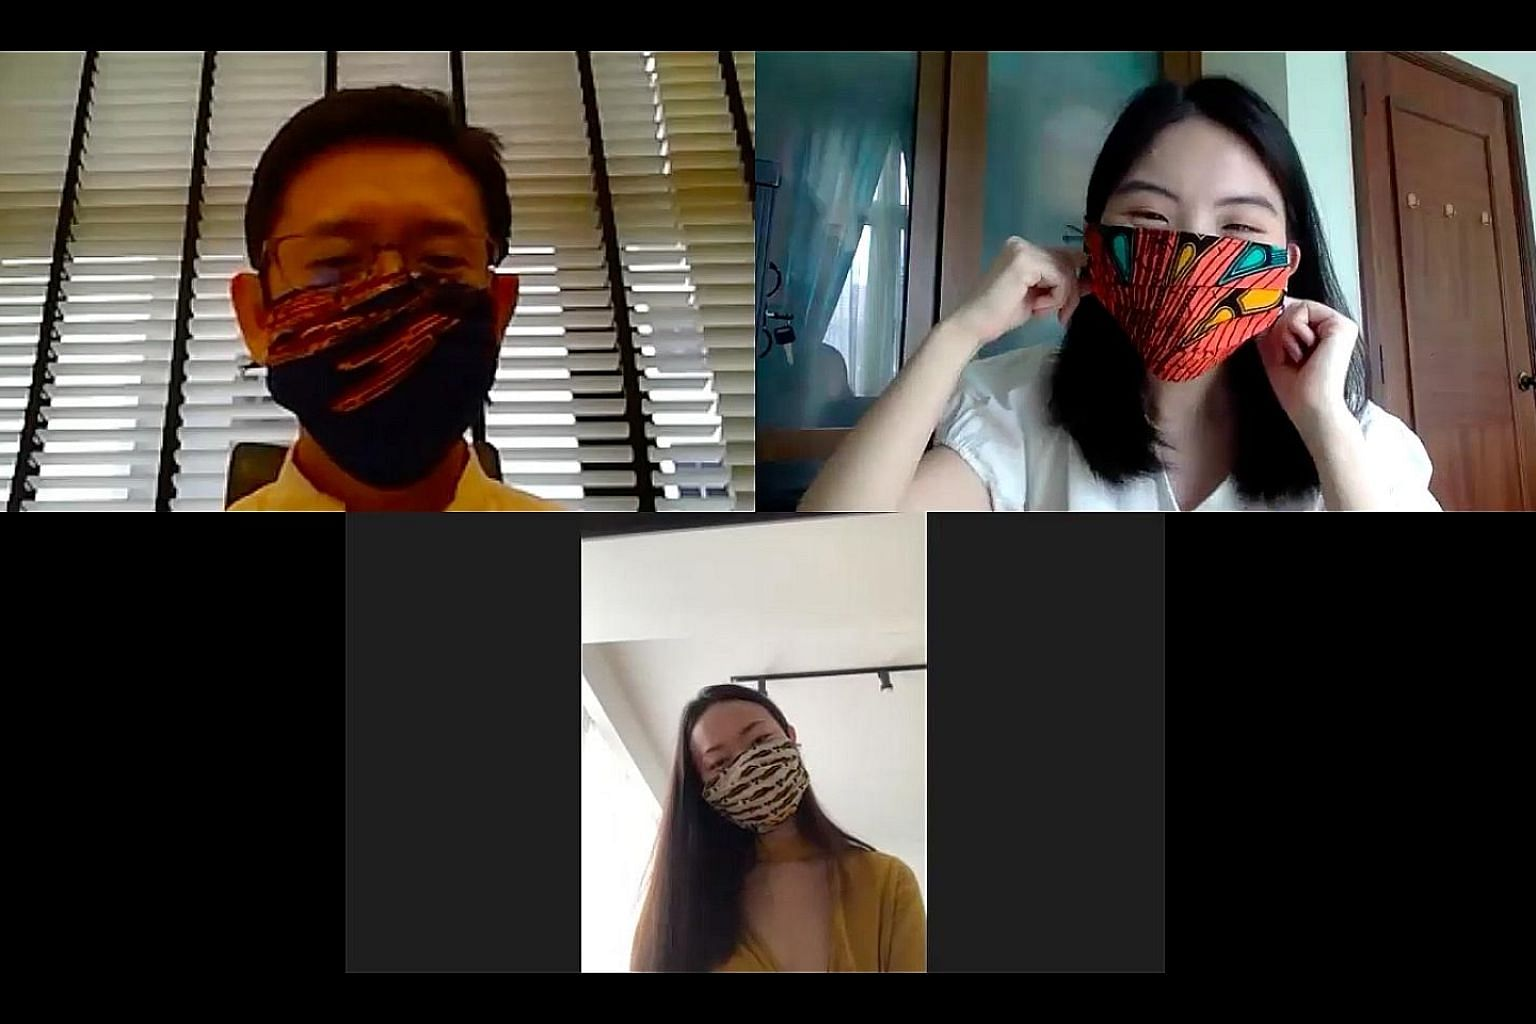 (Clockwise from top left) Wellchem Pharmaceuticals director Winthrop Wong, Sunday Times reporter Amanda Chai and dermatologist Teo Wan Lin testing the fabric masks.